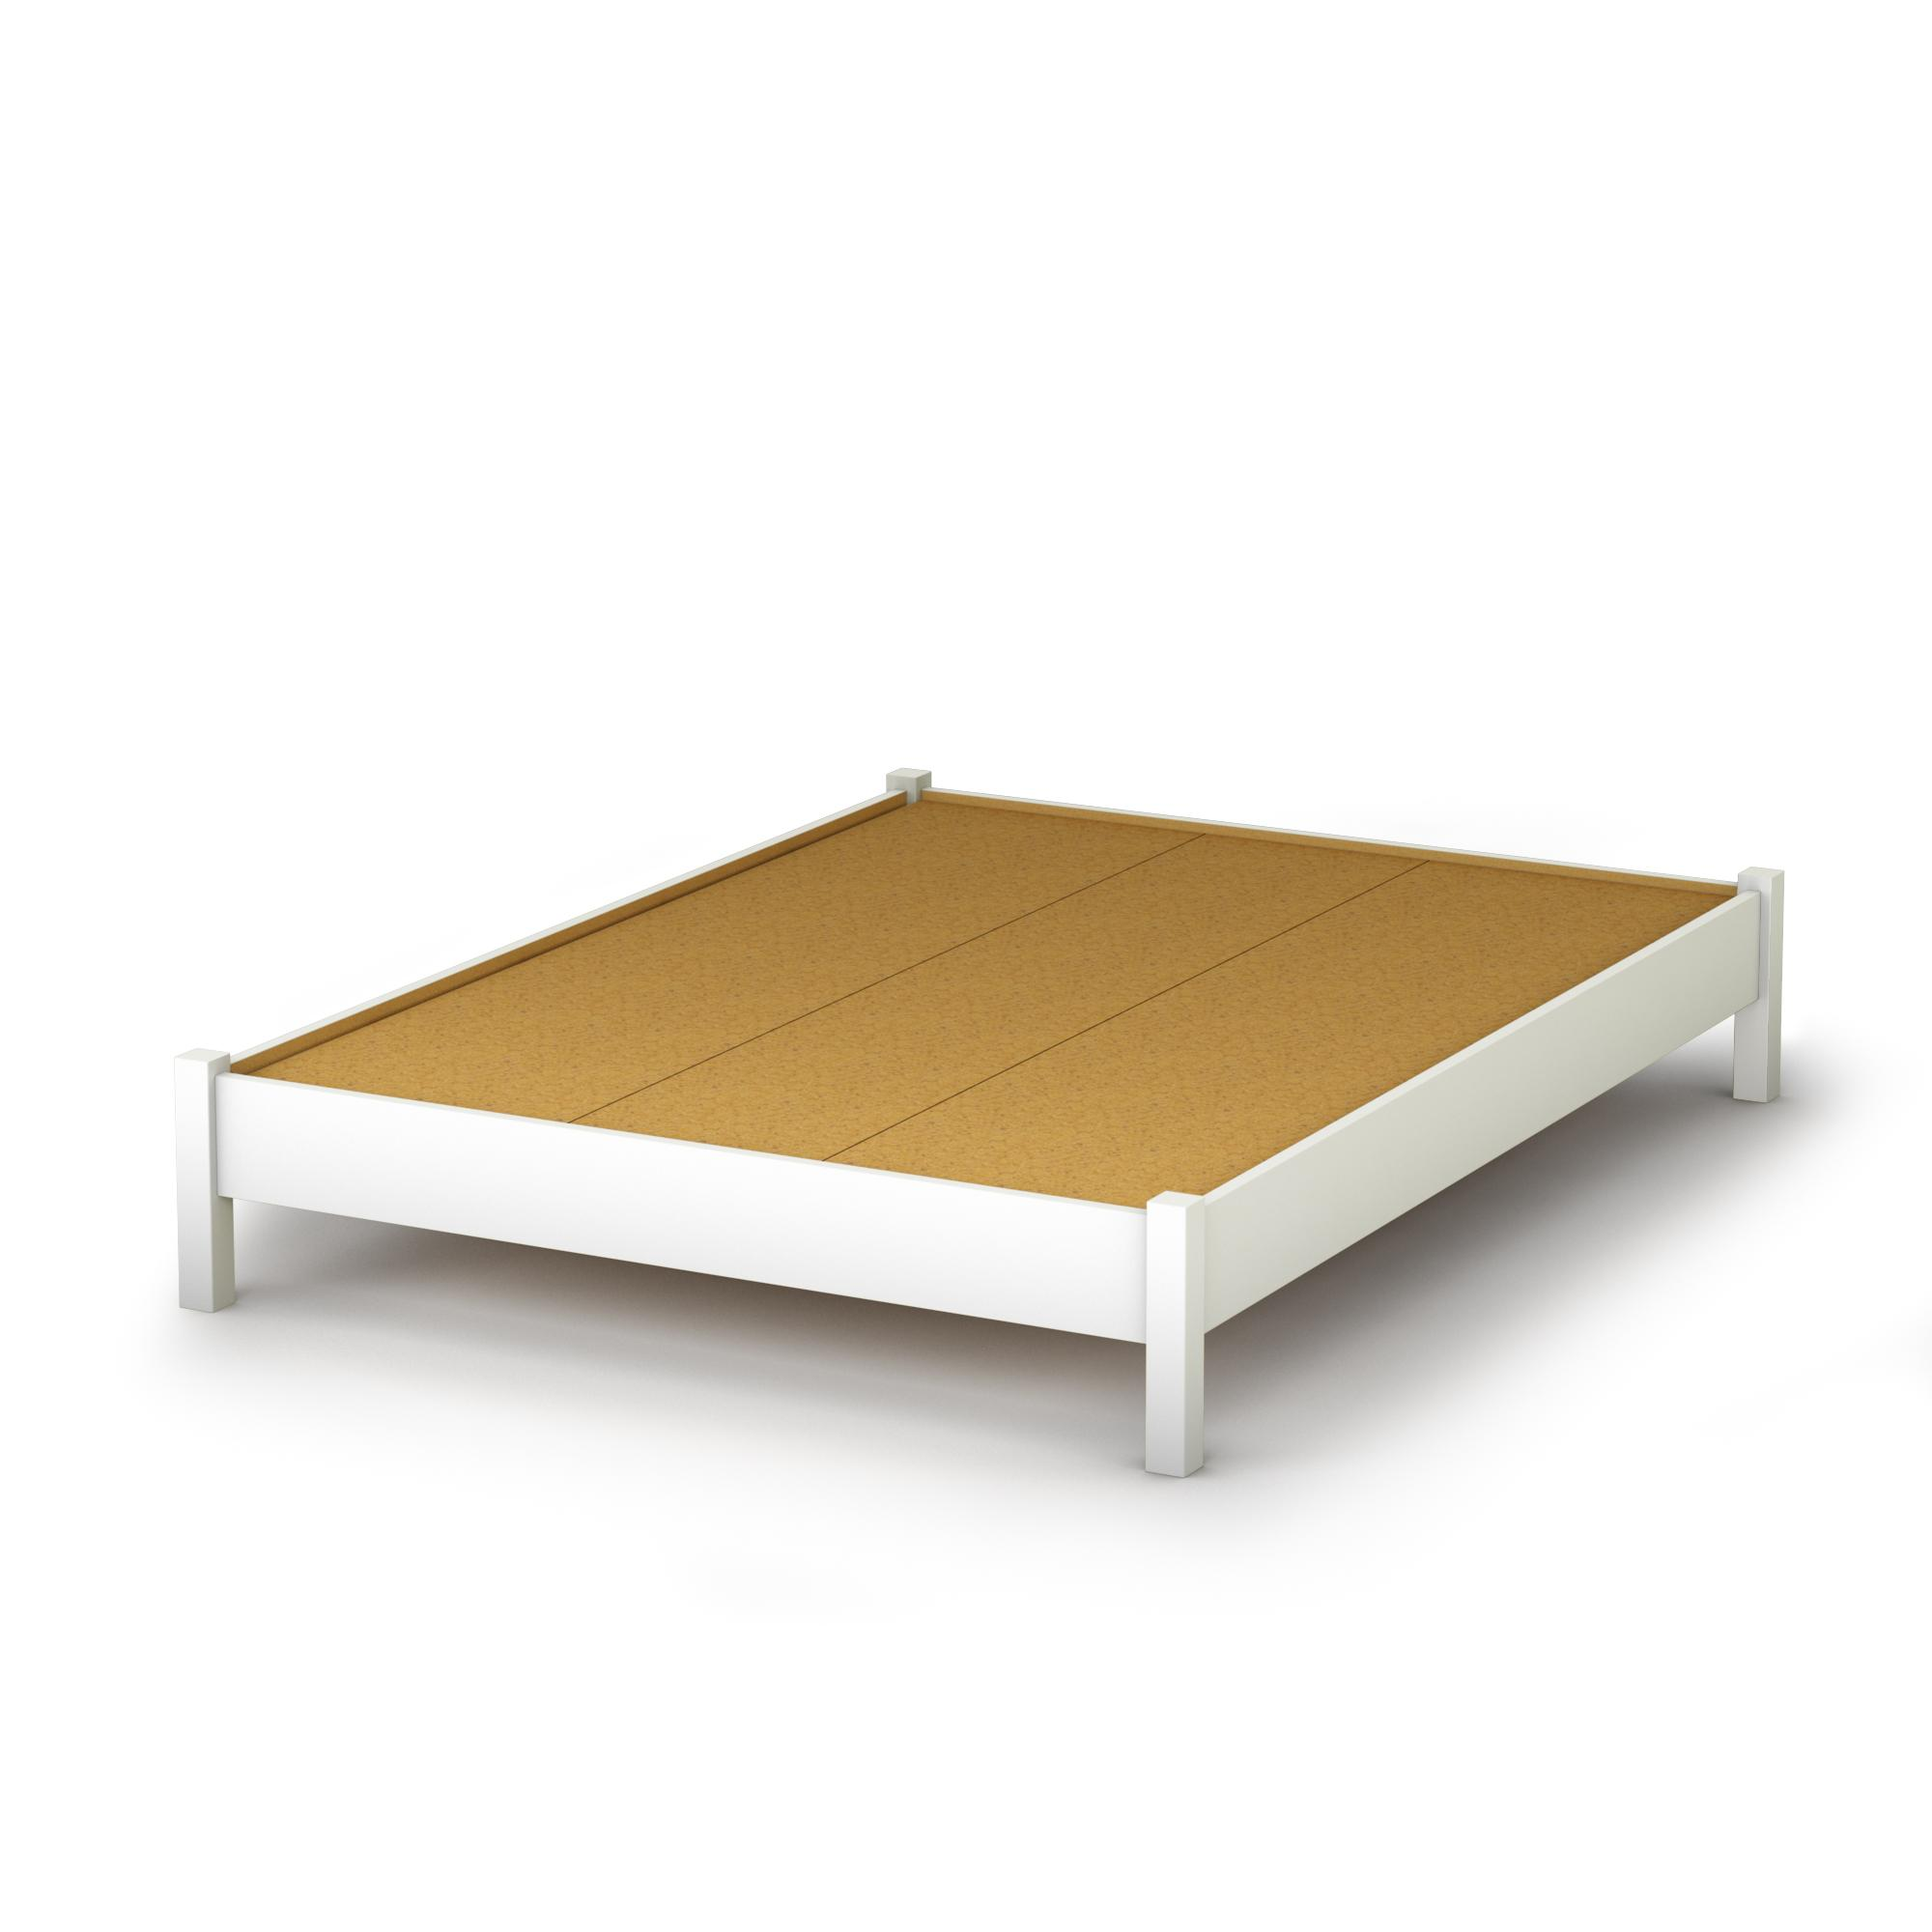 full bed platform amazoncom south shore sandbox collection   - south shore step one full platform bed () in pure white by oj